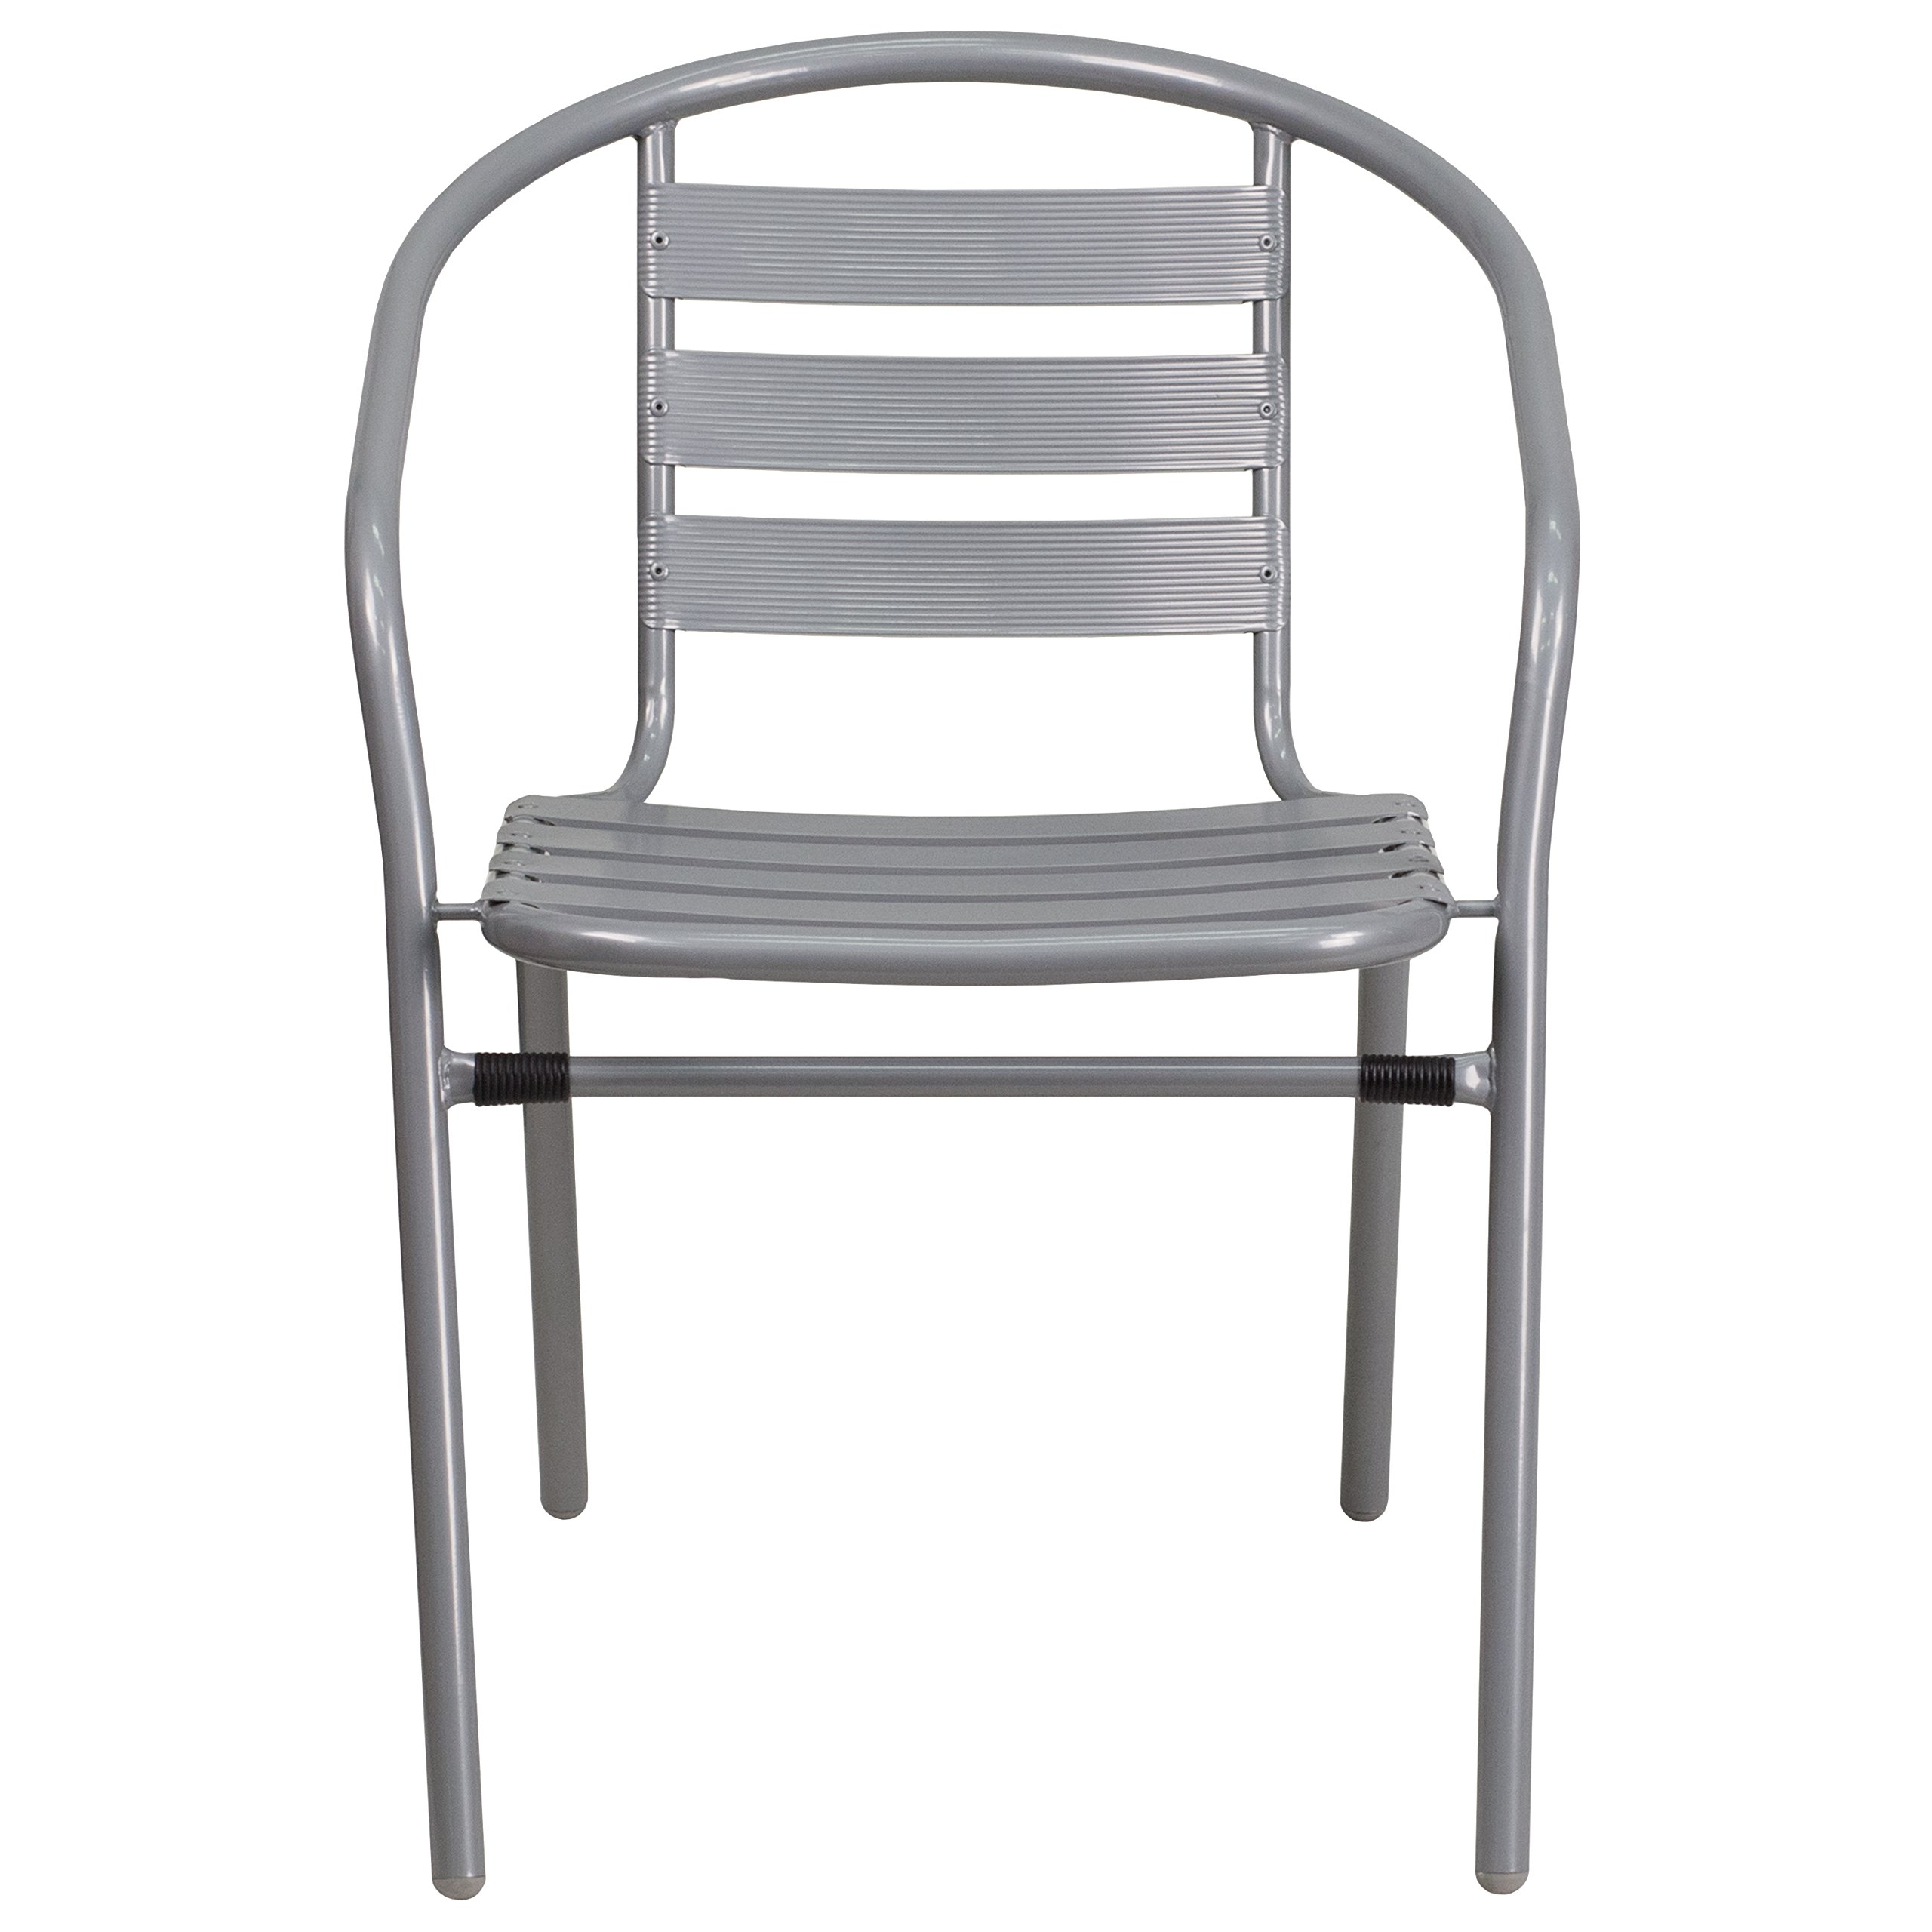 Flash Furniture 4 Pk. Silver Metal Restaurant Stack Chair with Aluminum Slats by Flash Furniture (Image #5)